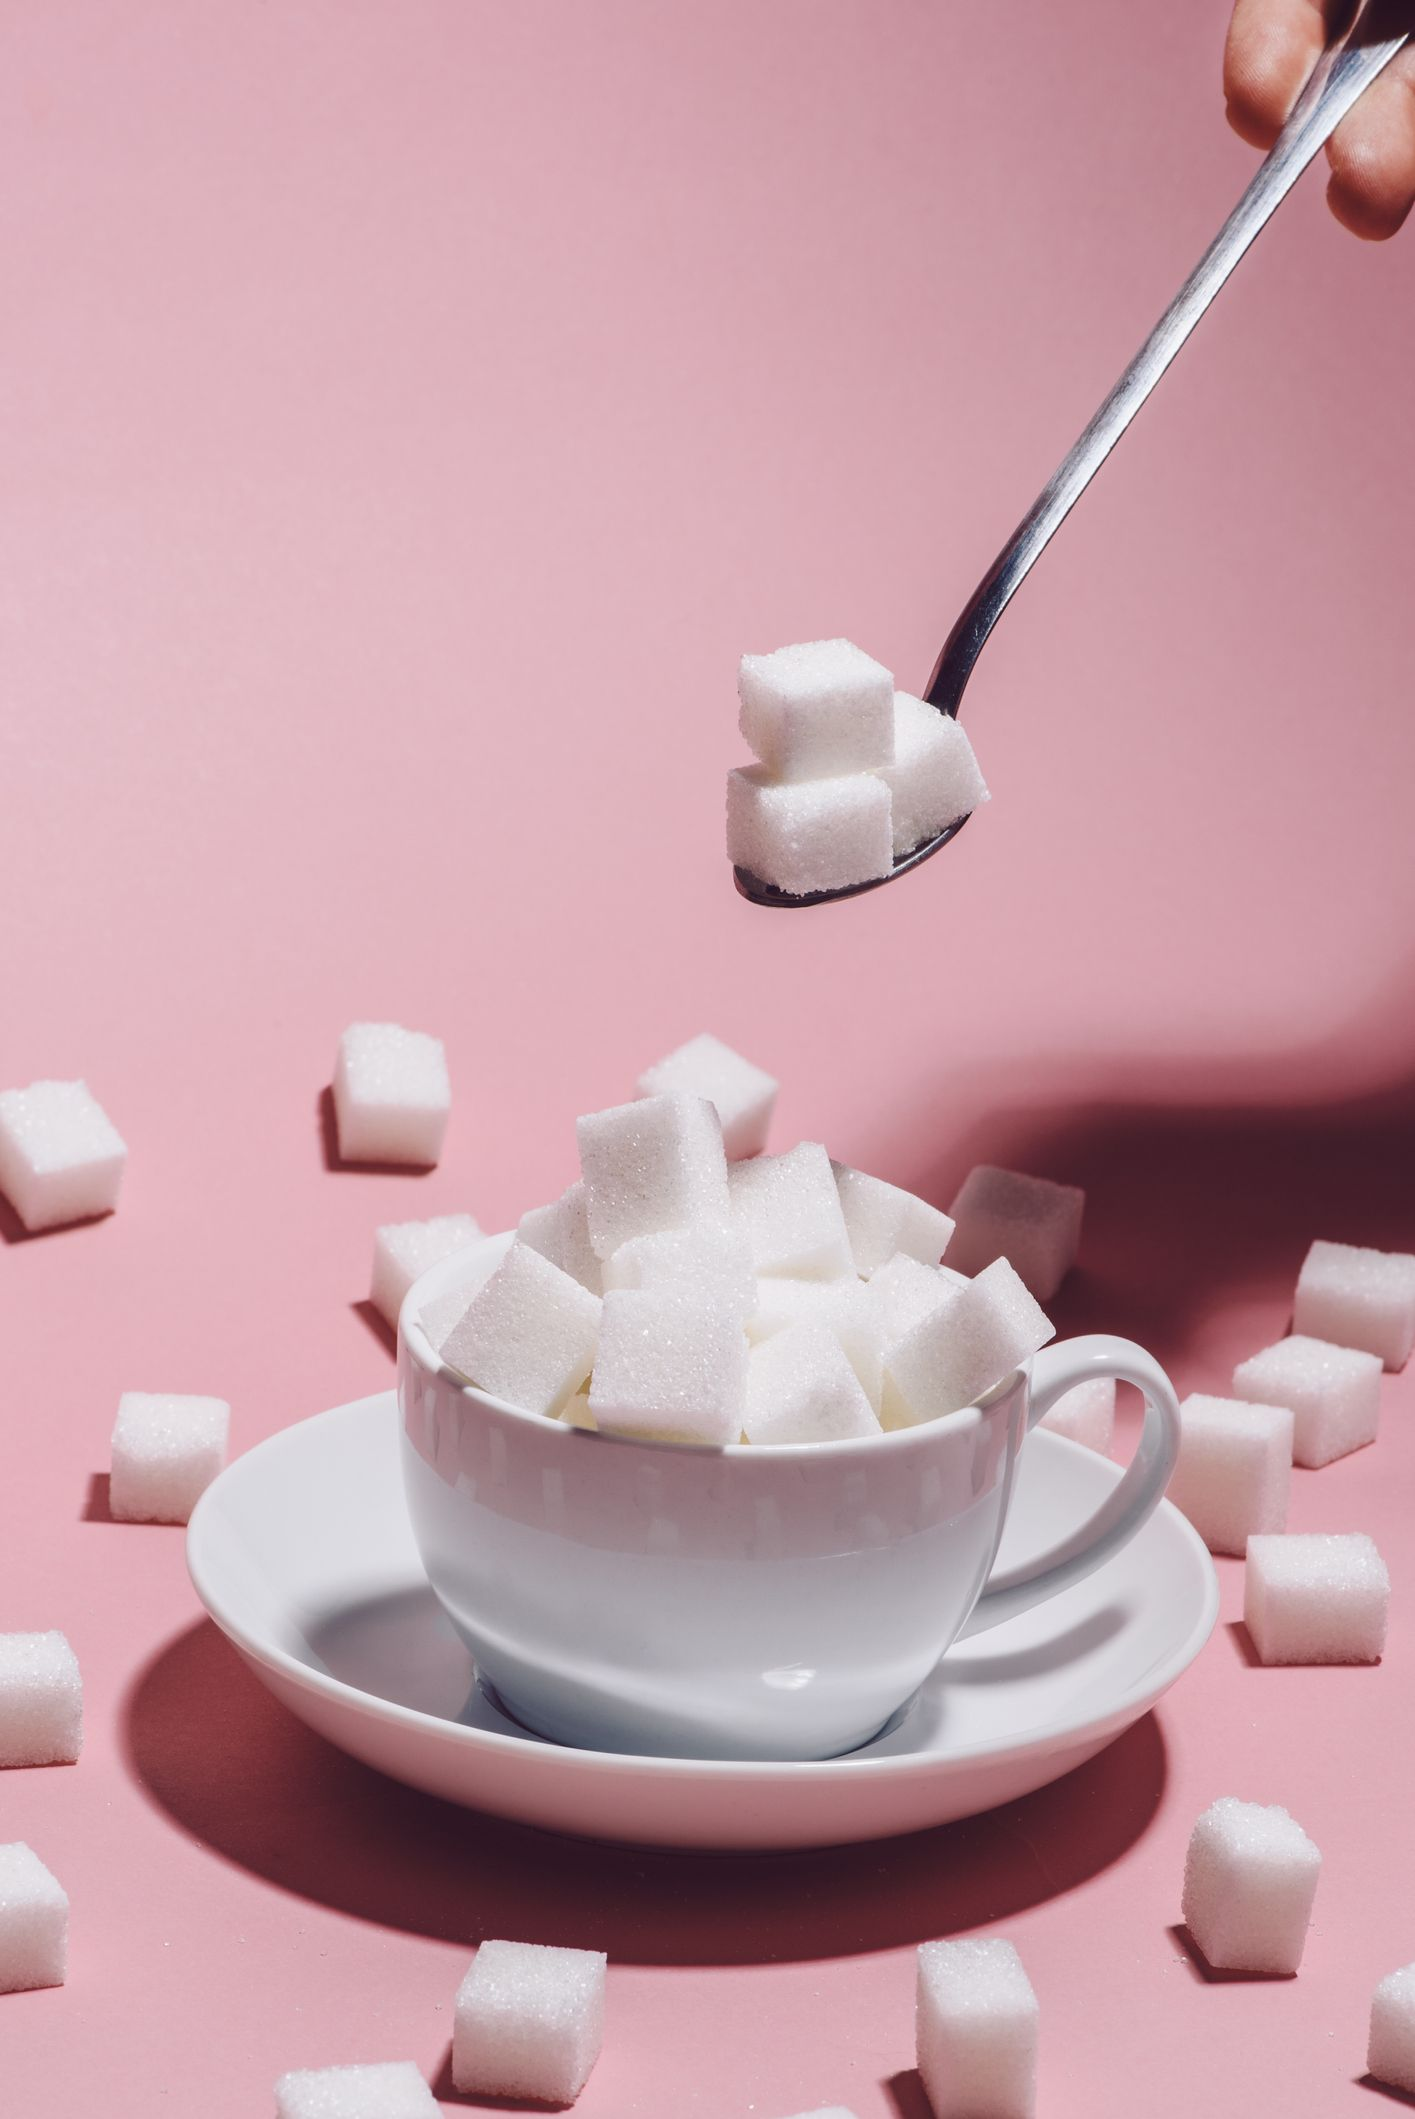 White cup full of sugar cubes